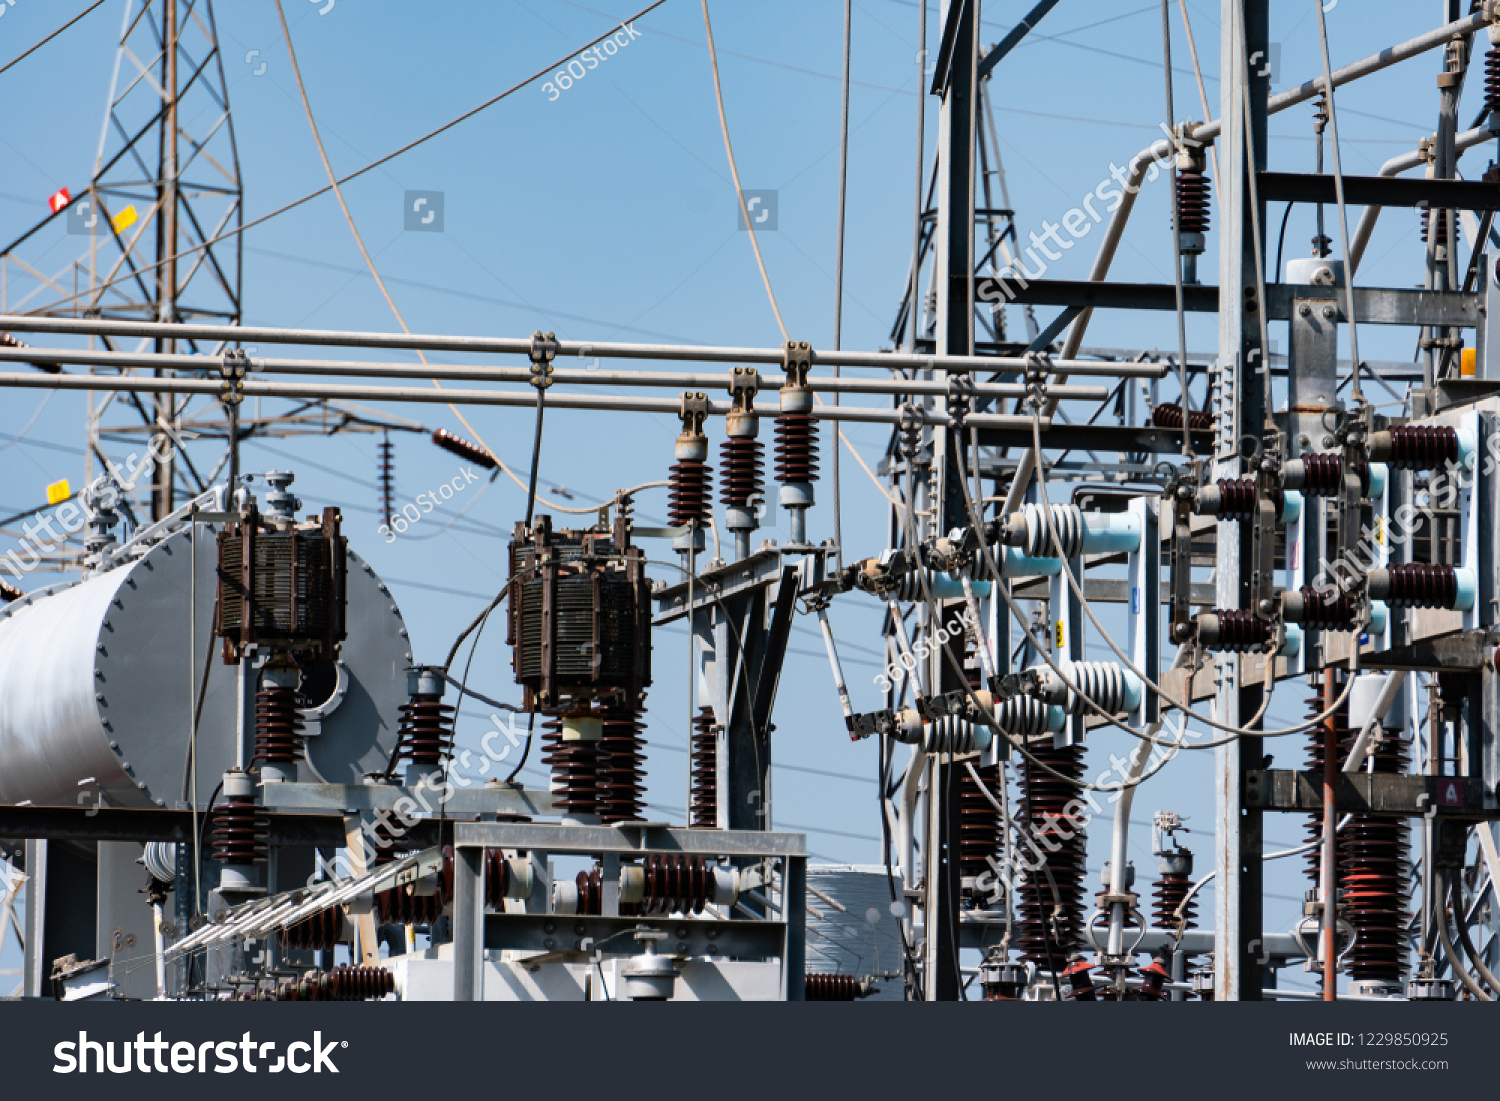 Electrical Substation Consisting Transformer Measurement Electric Measurements In Circuit The Of For Voltage Disconnect Switch